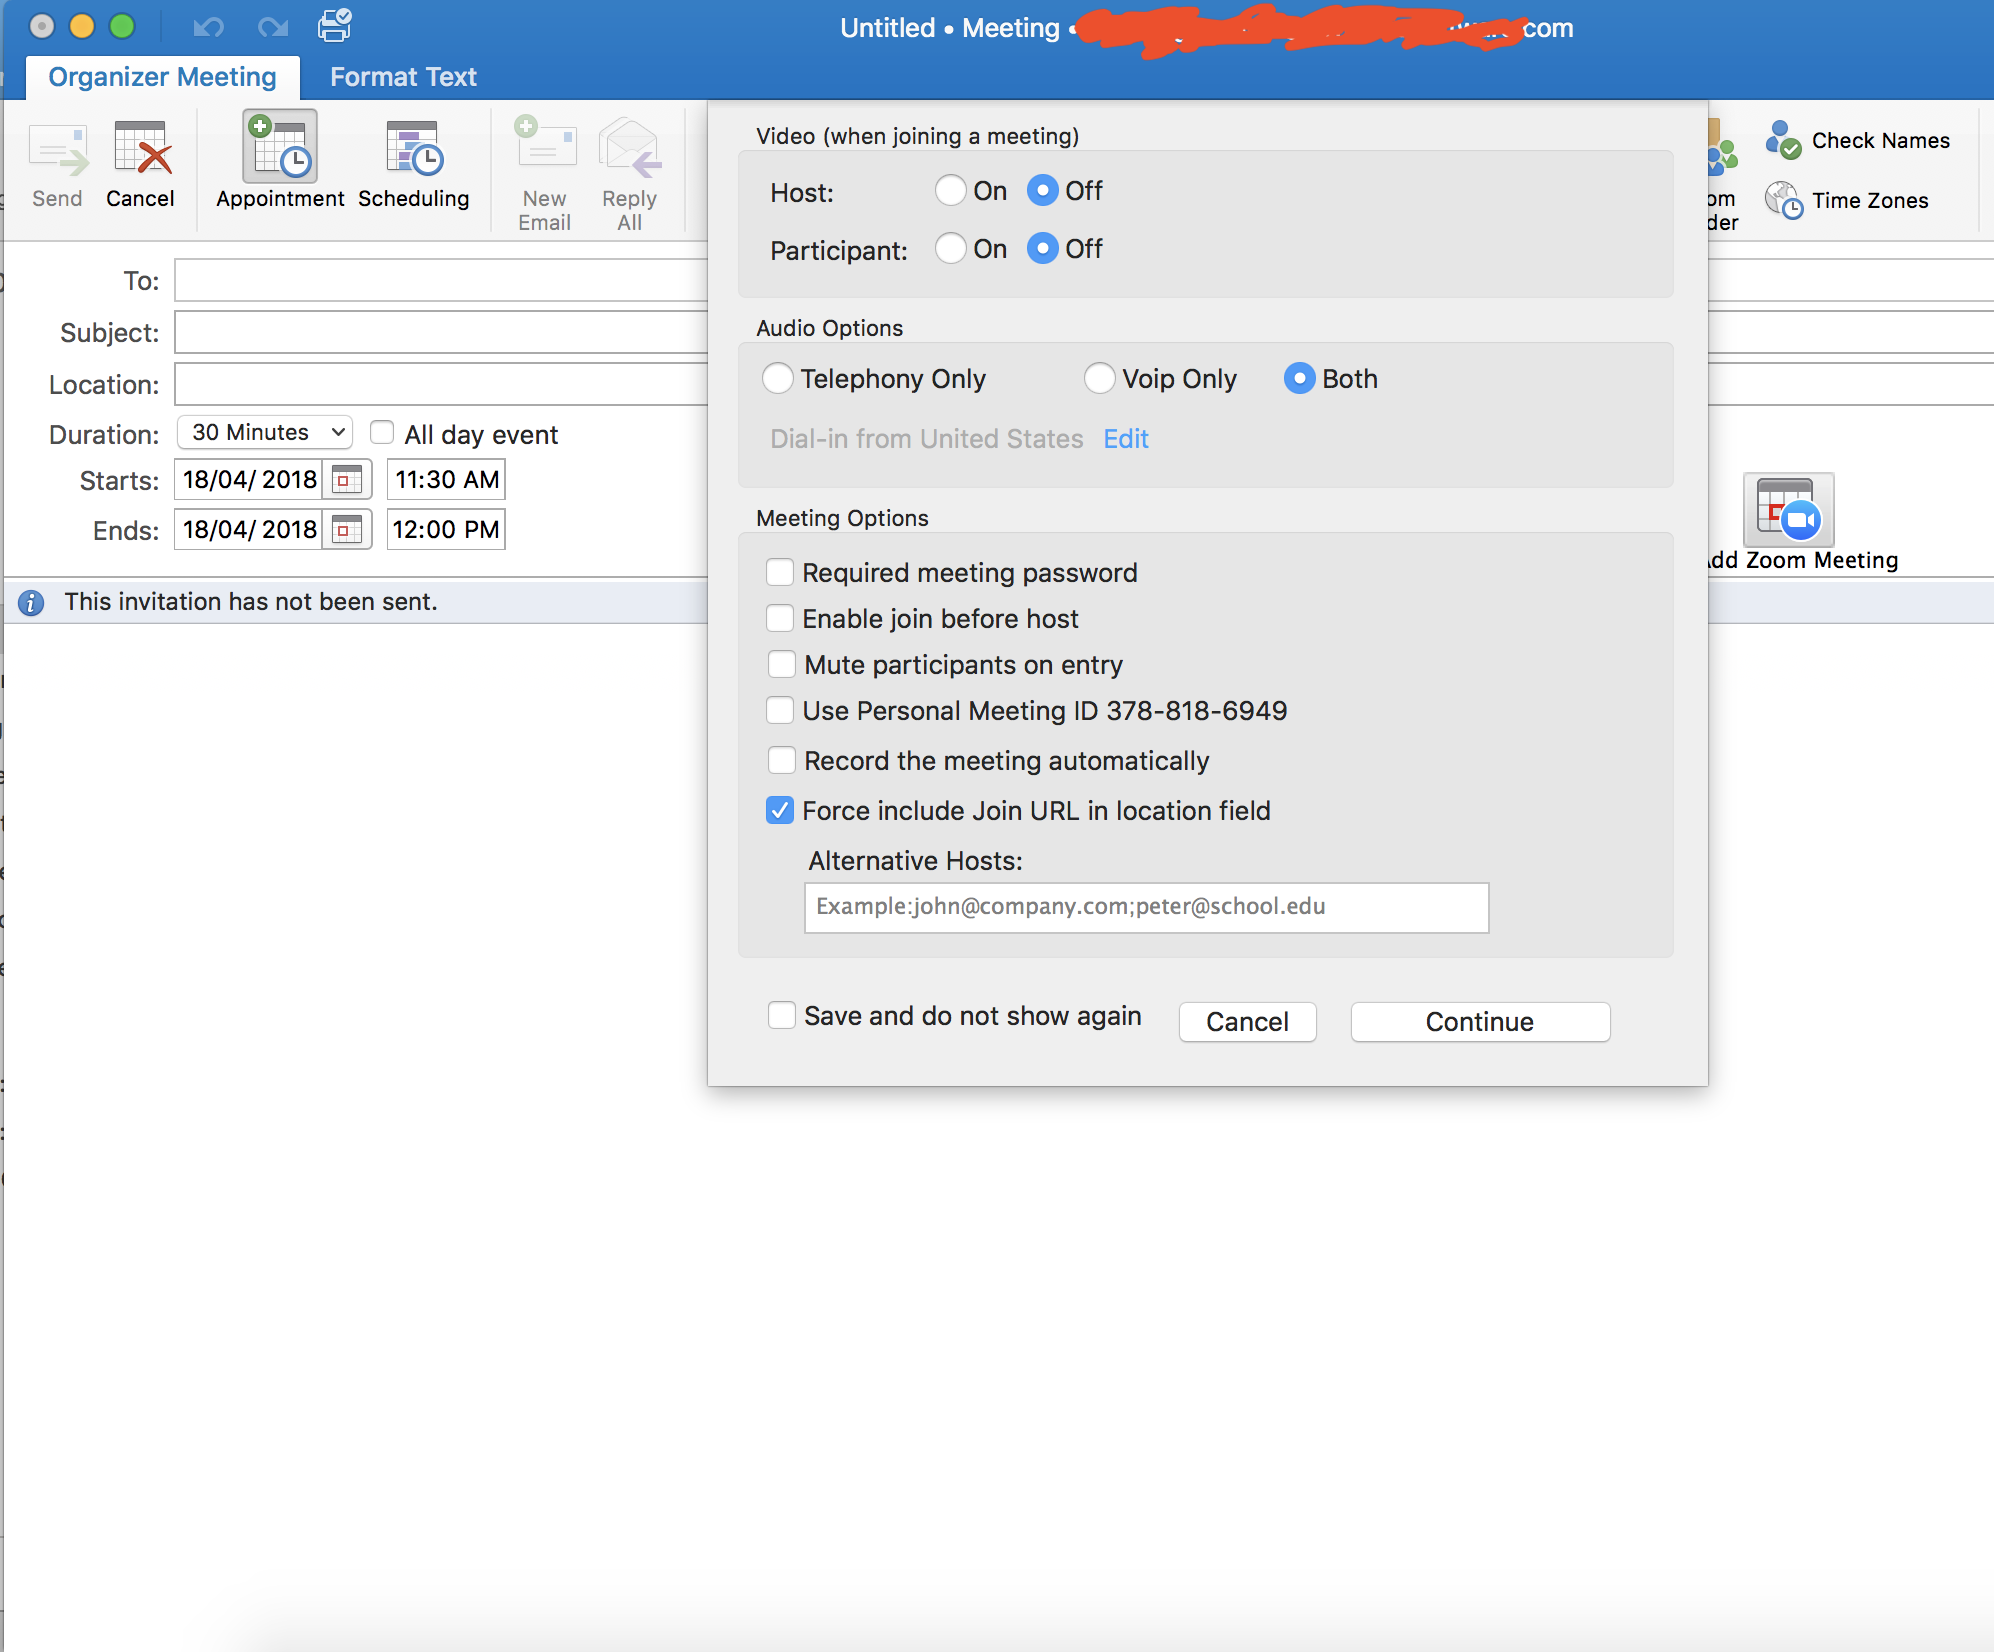 Outlook 2016 on macOS: Native Add-in, how to proceed